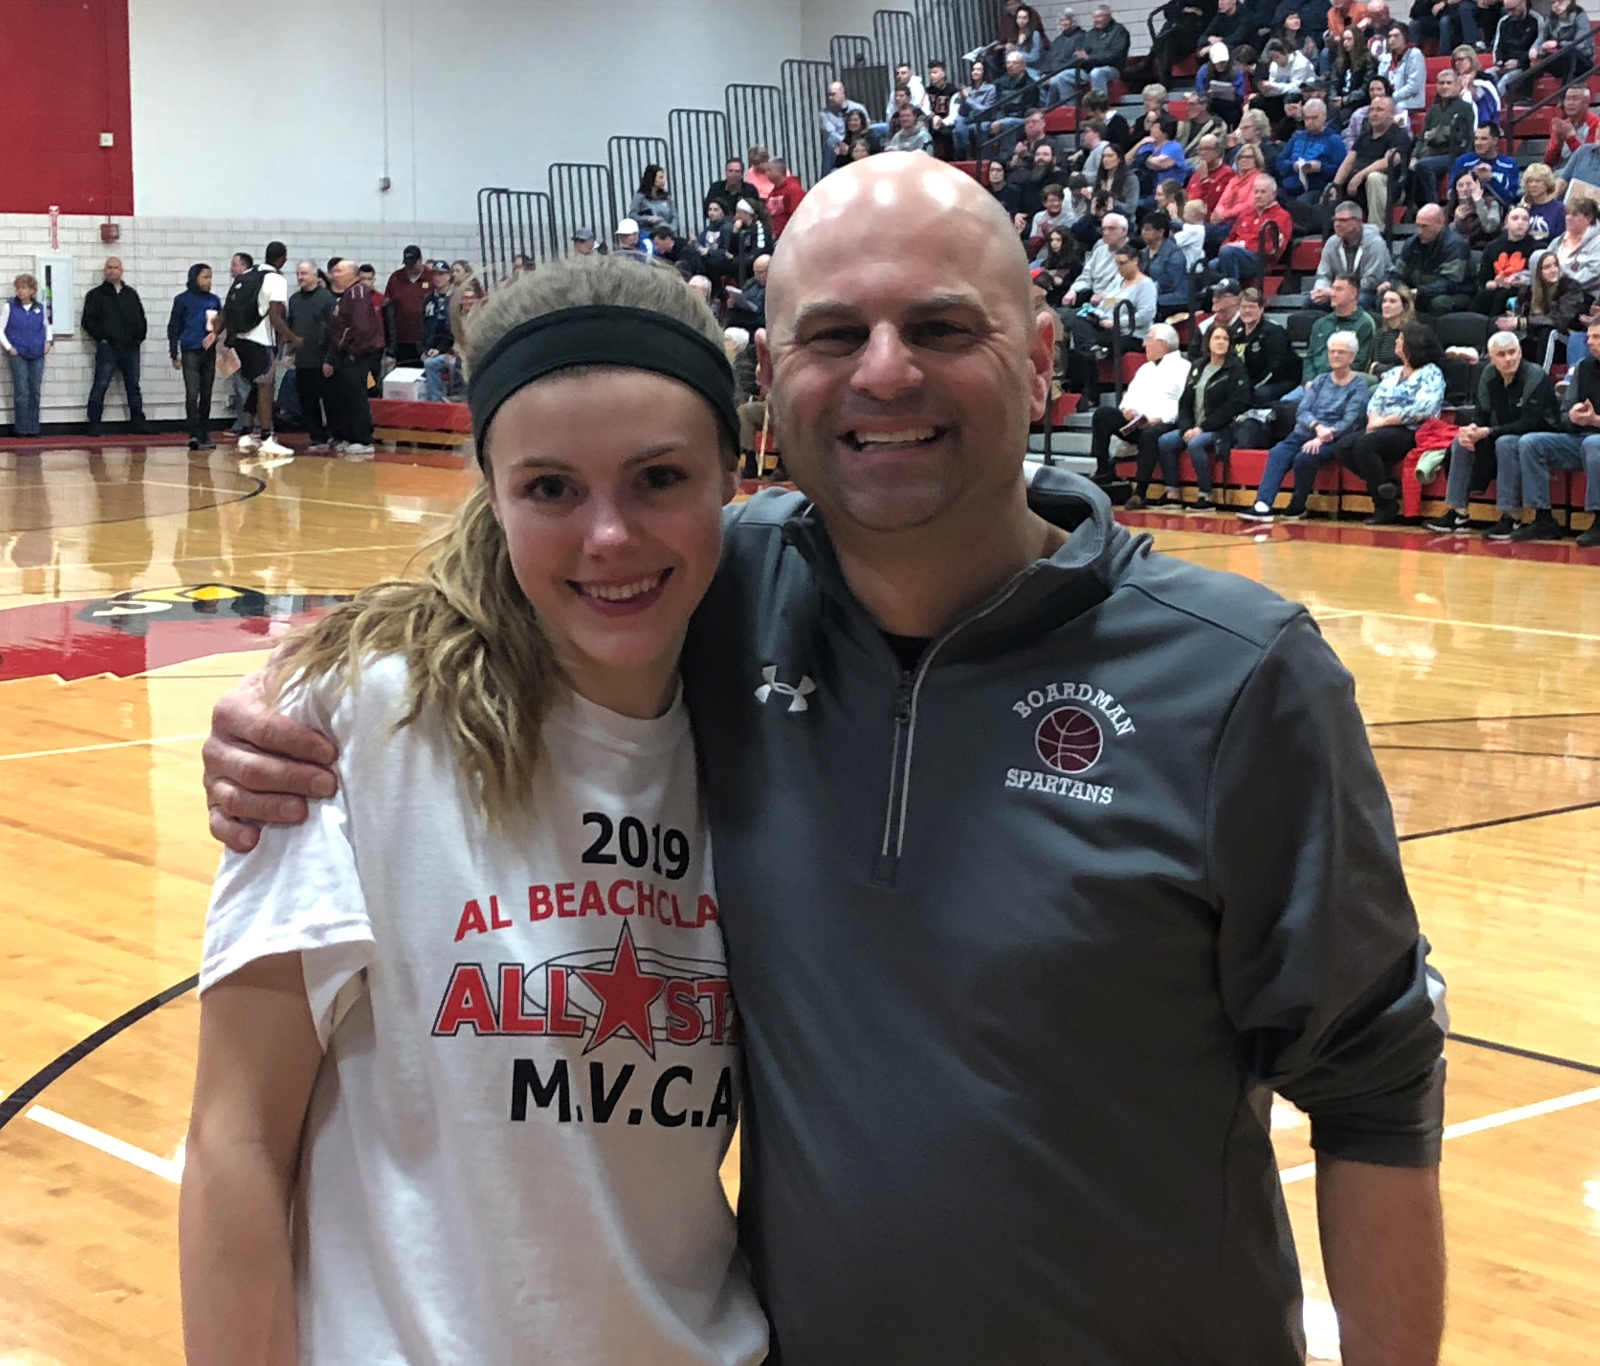 Senior Cate Green Selected To Play In Al Beach All-Star Game Featuring Mahoning vs Trumbull County Seniors